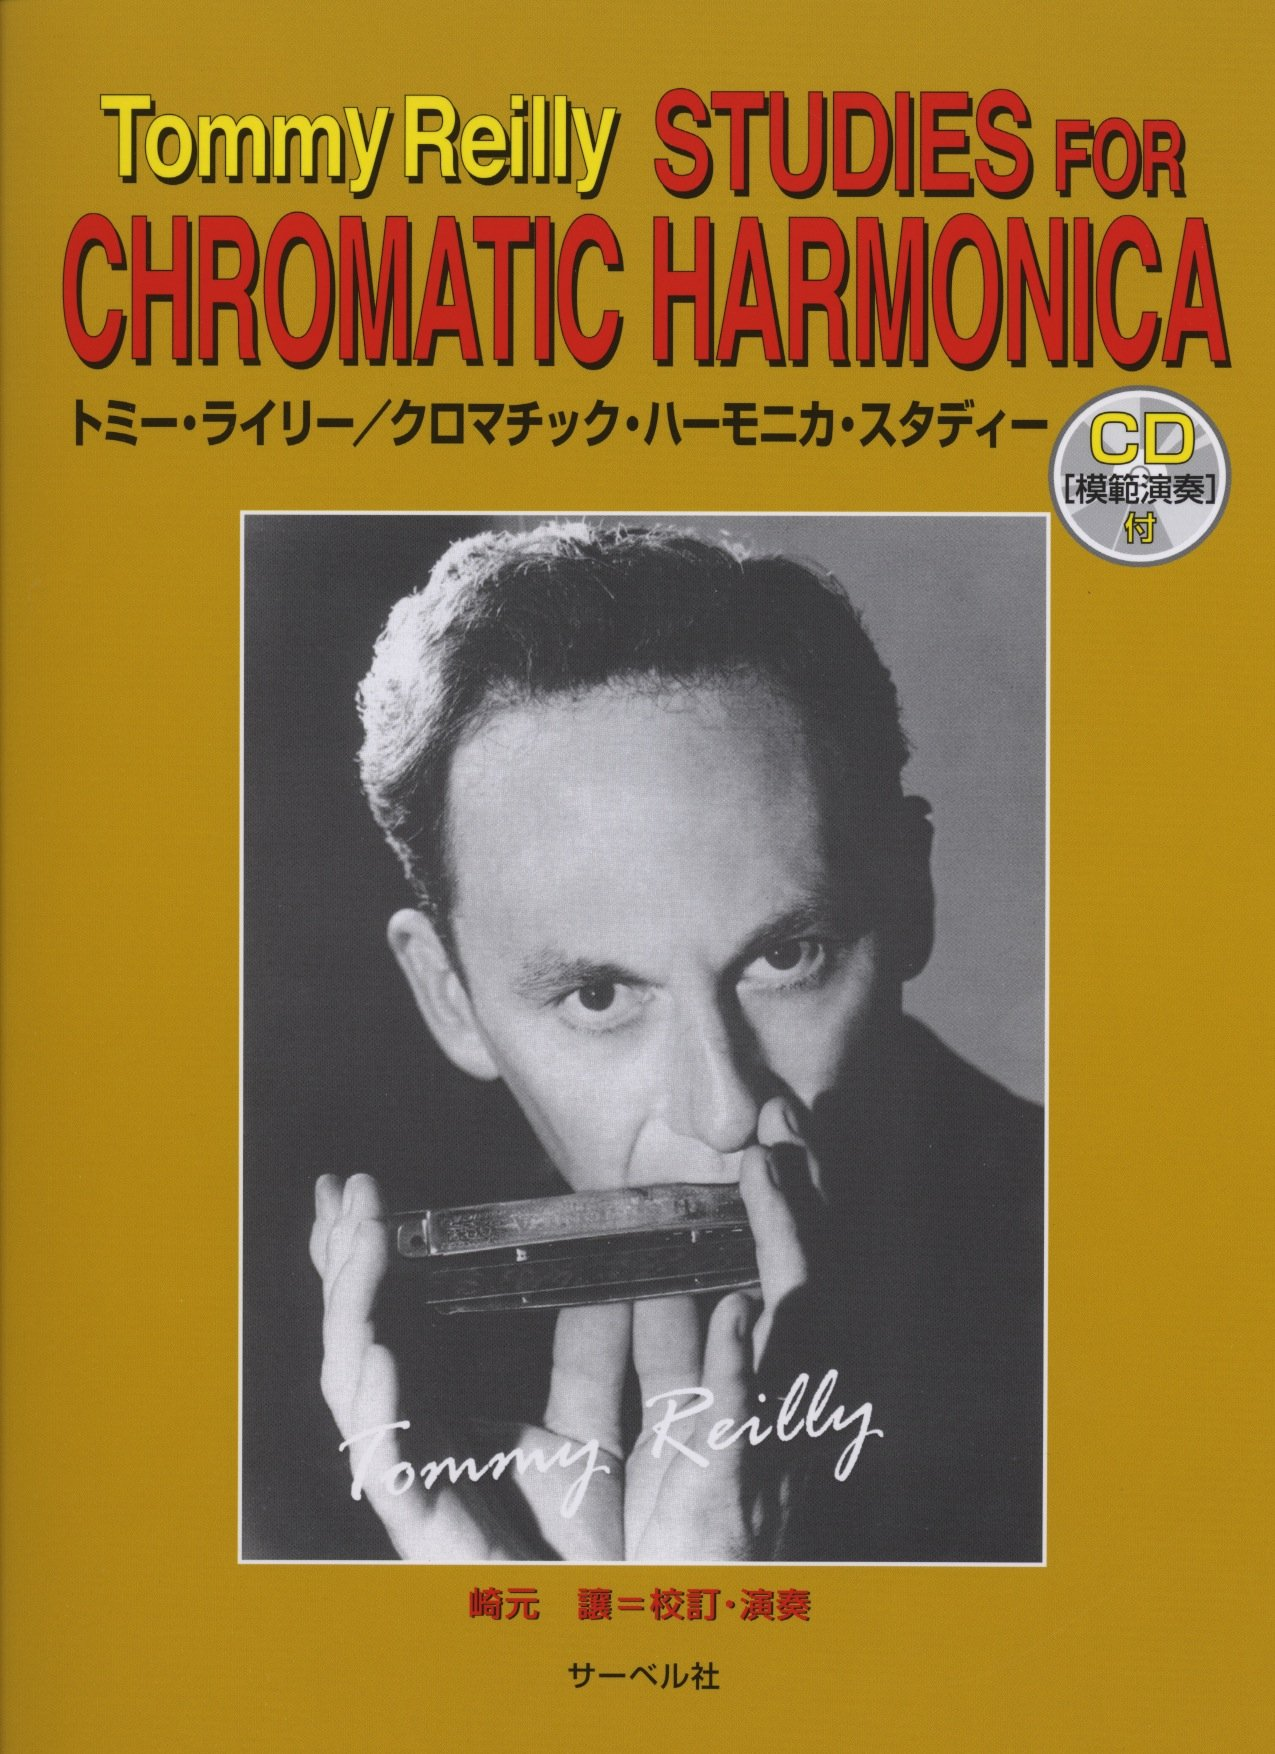 Tommy Riley / chromatic harmonica study model performance with CD (2009) ISBN: 4883715302 [Japanese Import]